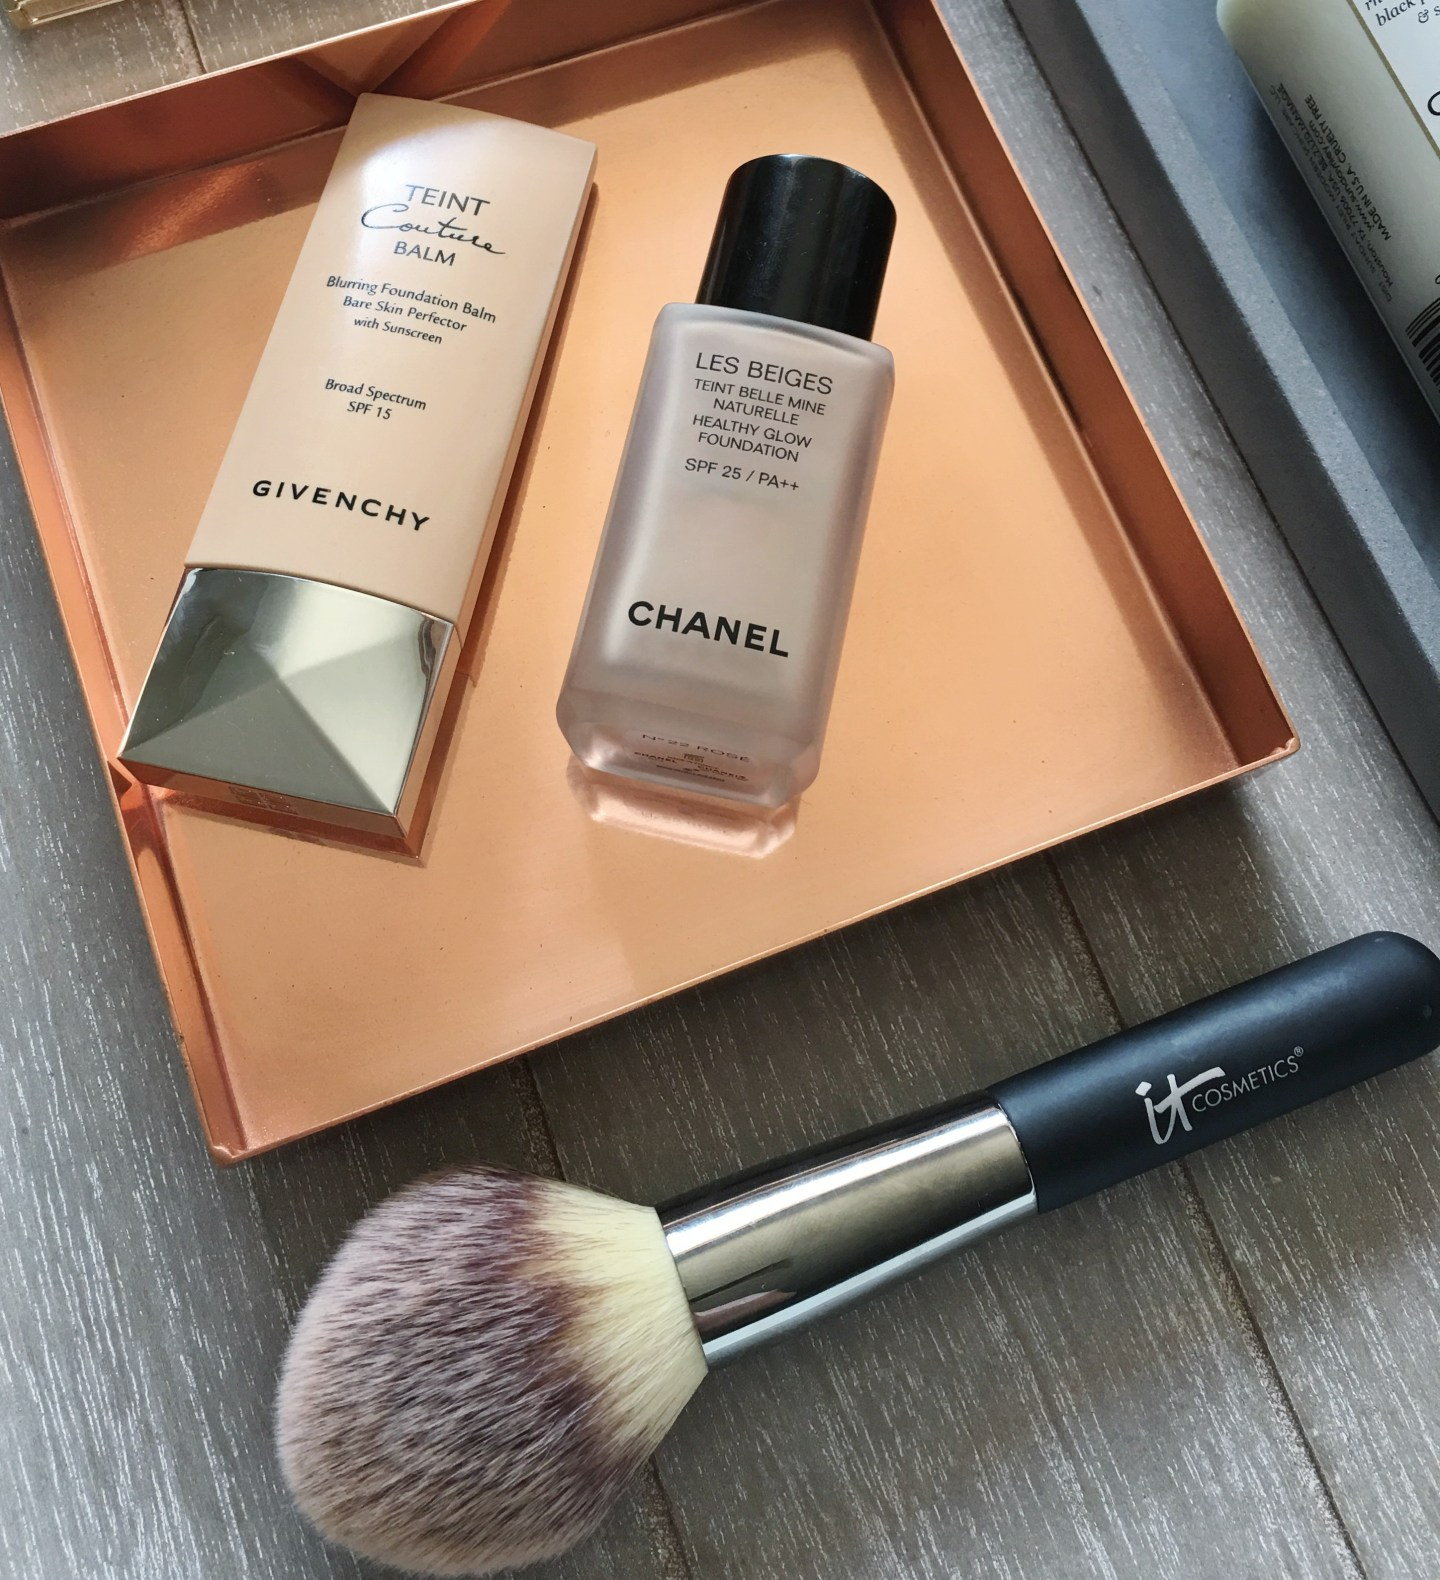 Givenchy Teint Couture Balm, Chanel Les Beiges Foundation, It Cosmetics Brush